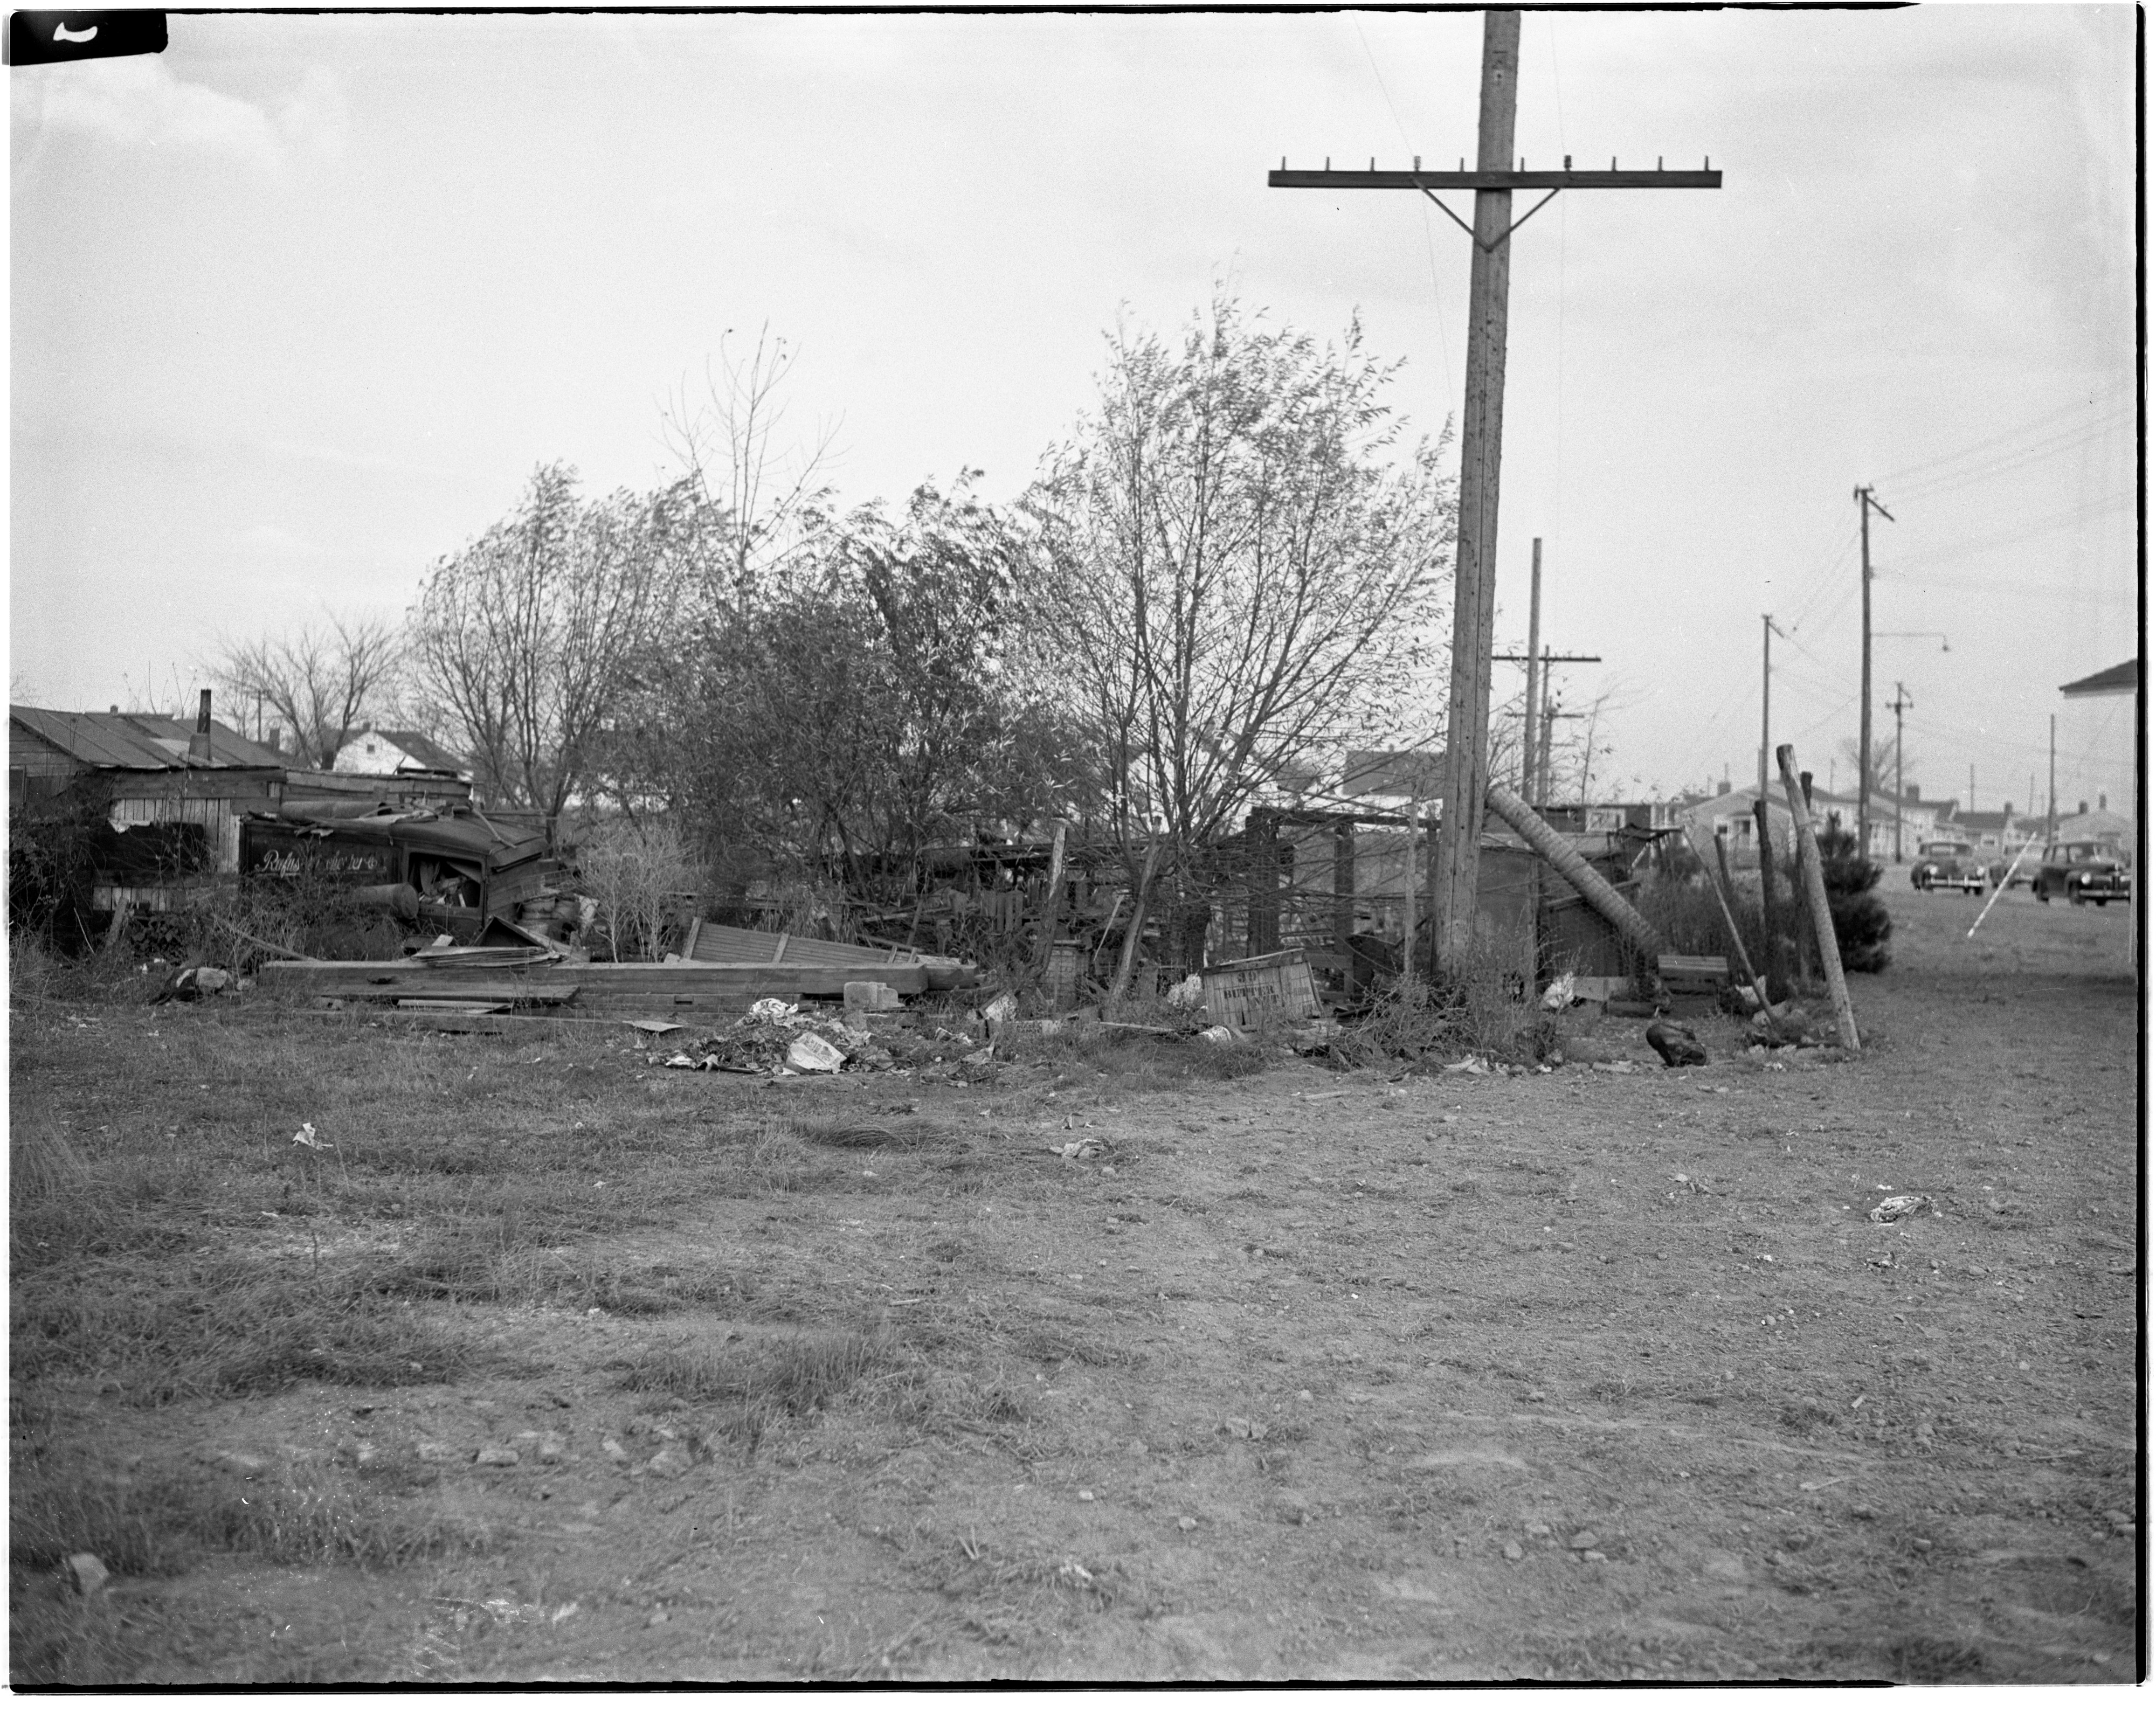 Condemned Property in Pittsfield Village, November 1944 image